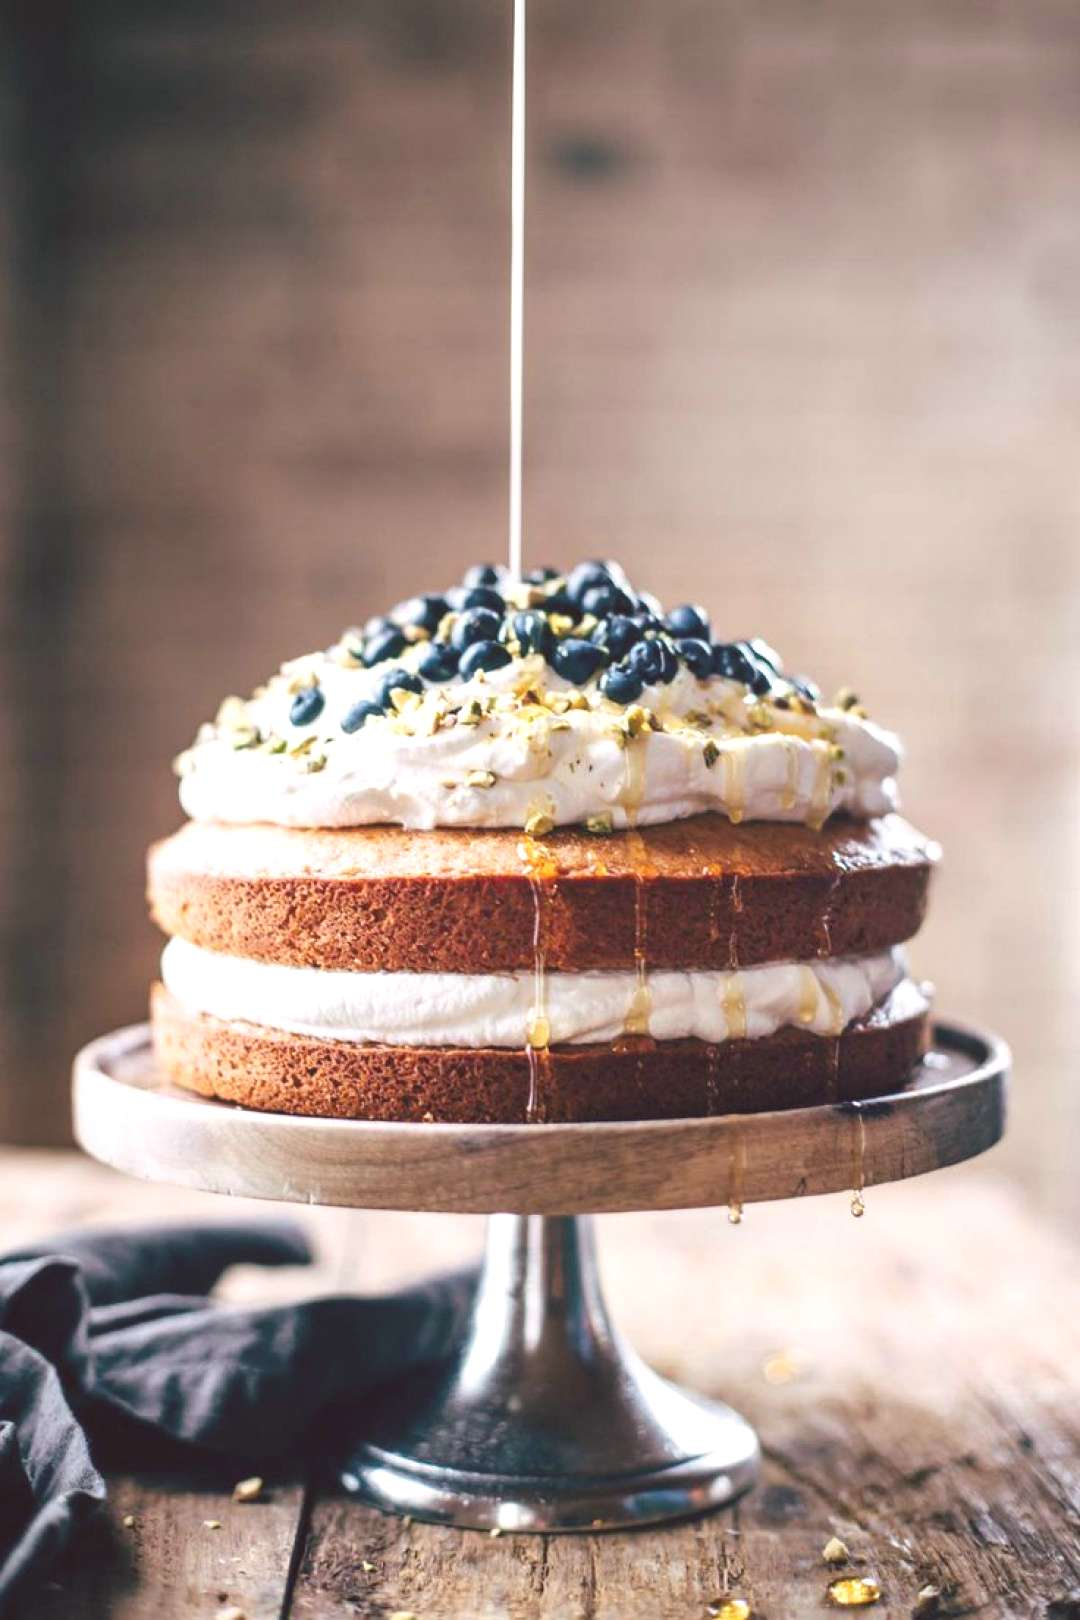 Blueberry Orange Brunch Cake with Agave and Pistachios -